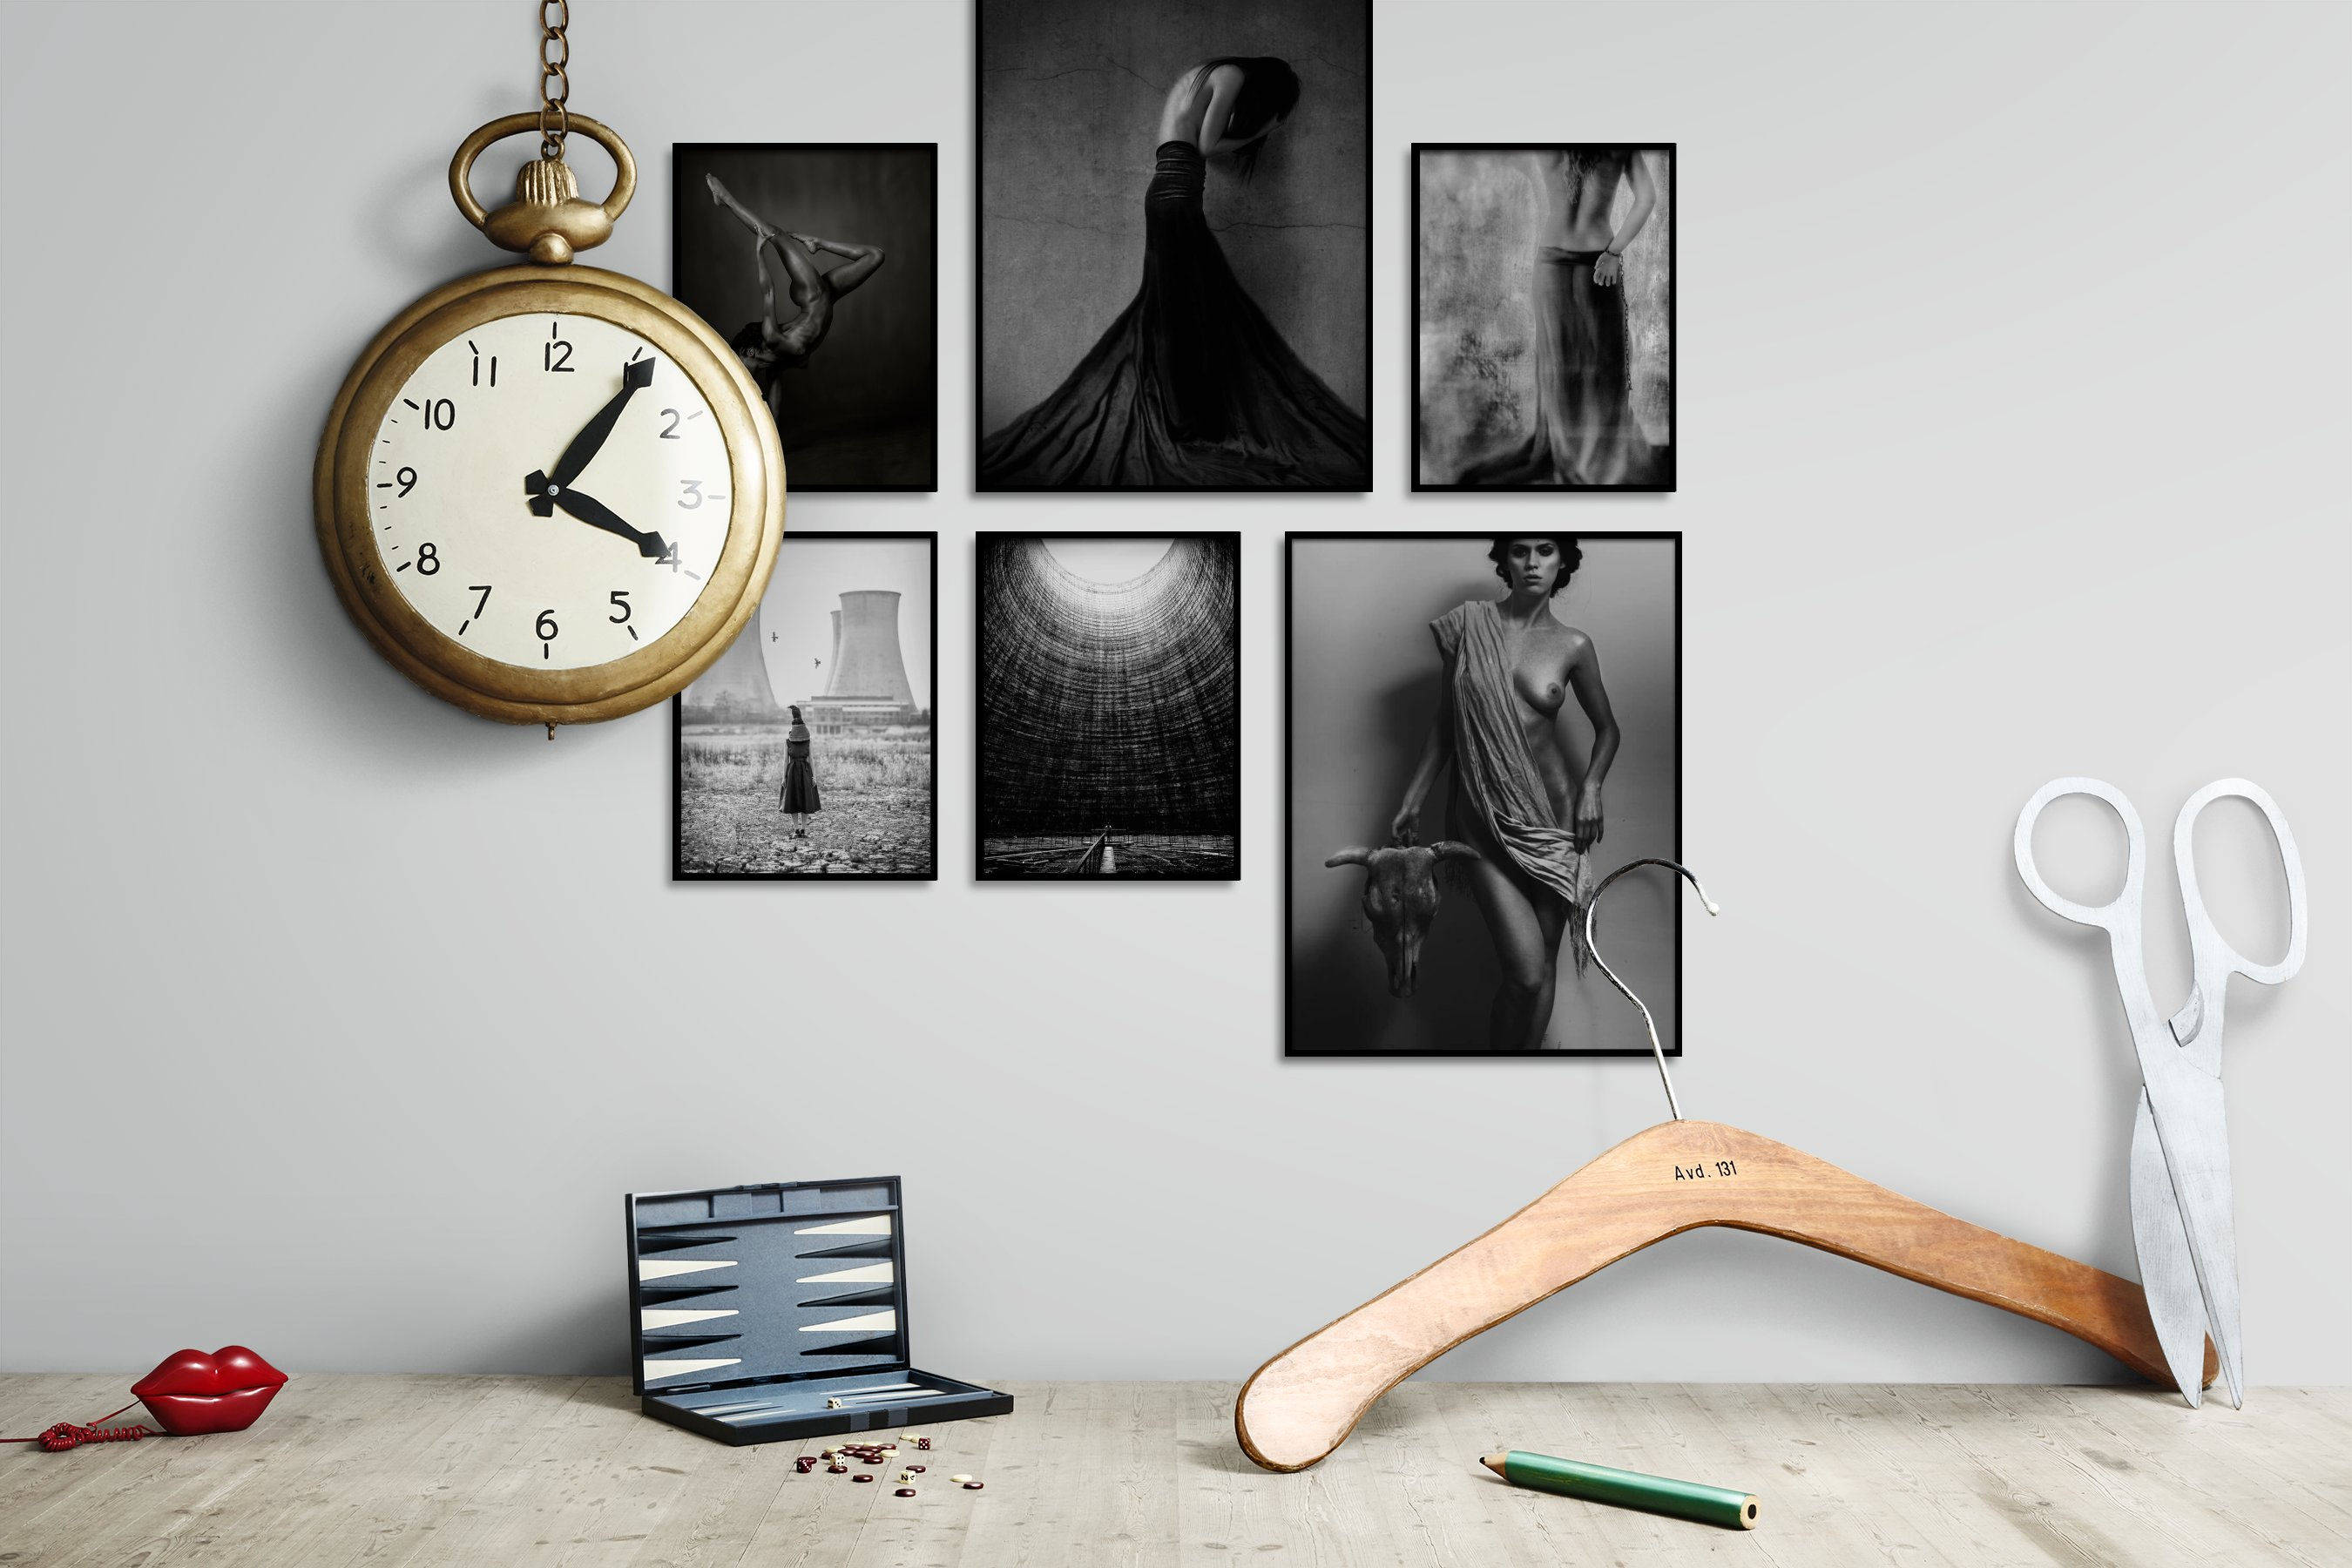 Gallery wall idea with six framed pictures arranged on a wall depicting Fashion & Beauty, Black & White, For the Minimalist, Bold, Artsy, Country Life, and For the Maximalist